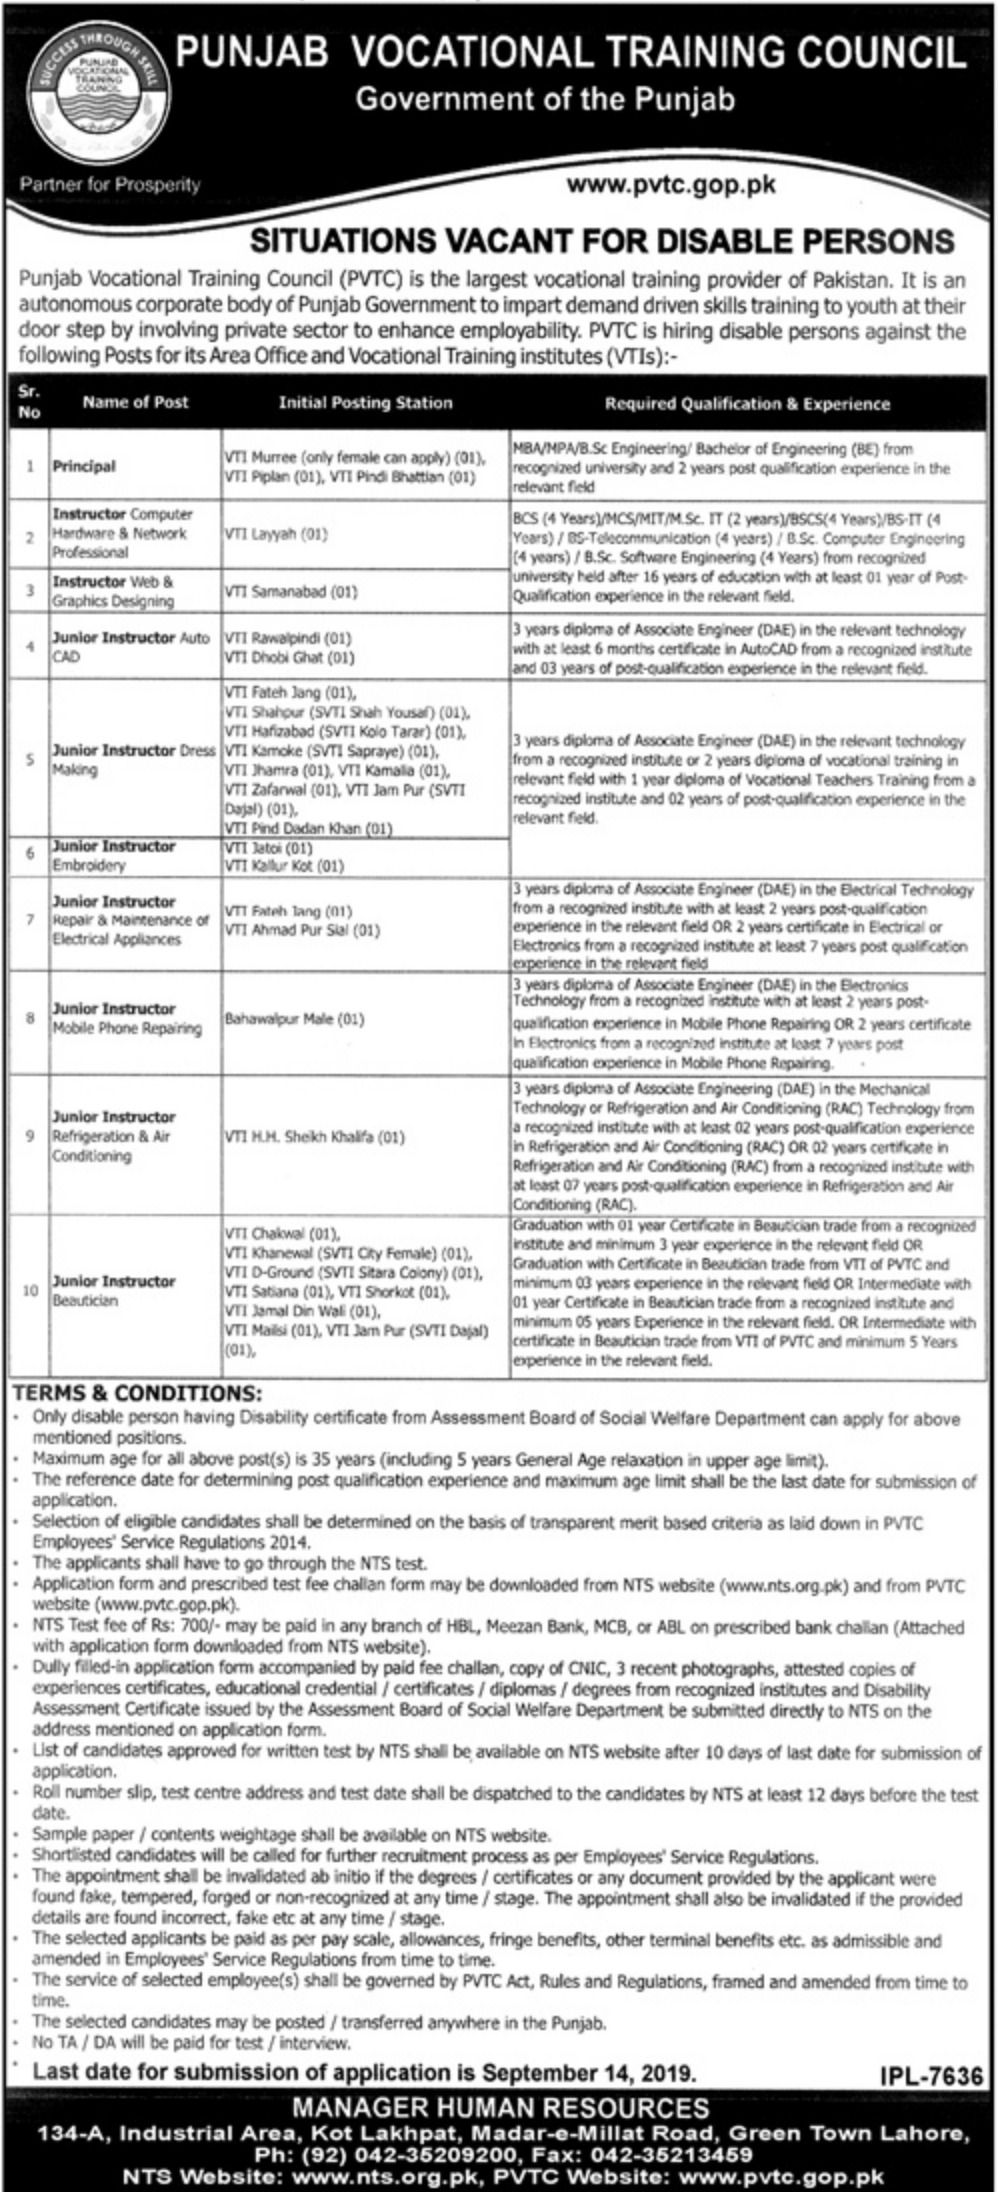 Punjab Vocational Training Council PVTC Jobs 2019 NTS Application Form Download